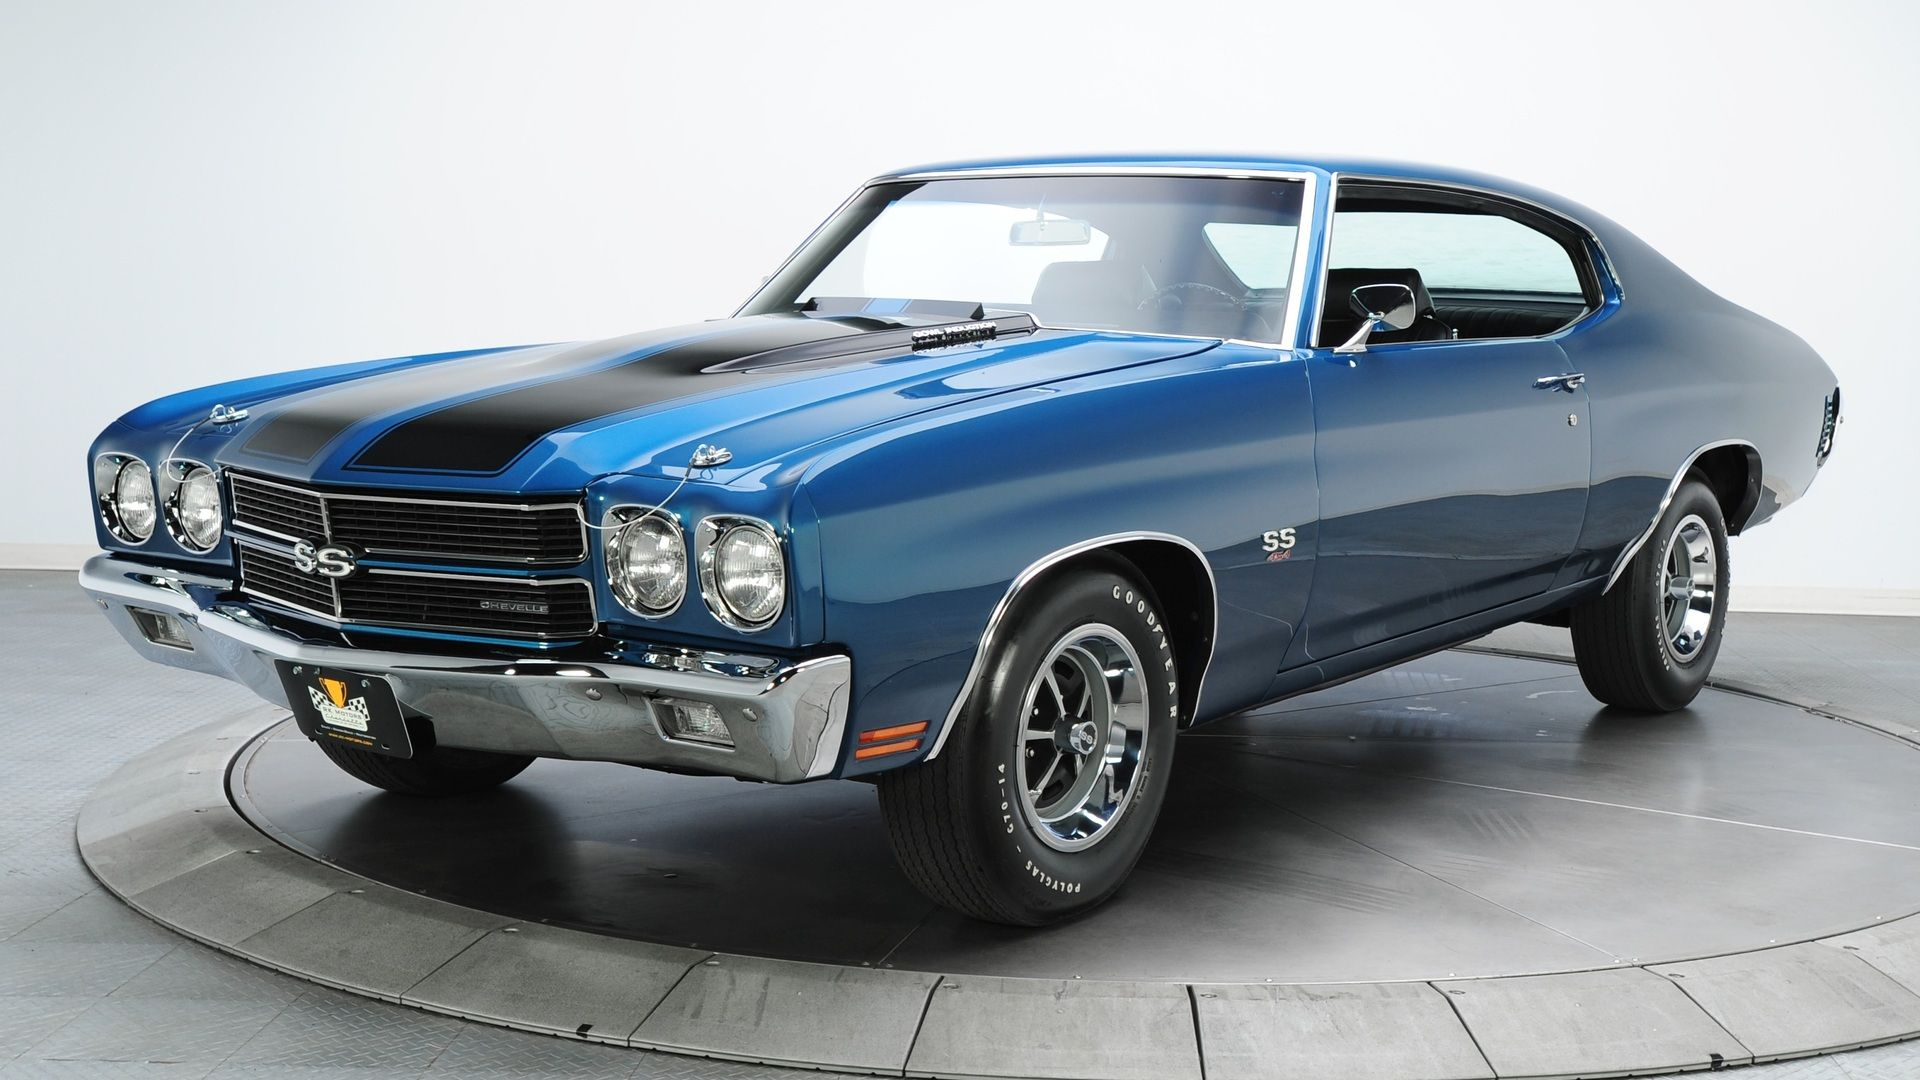 Dave 1970 ss 454 chevelles infobahn outfitters the ss chevelle the chevelle was